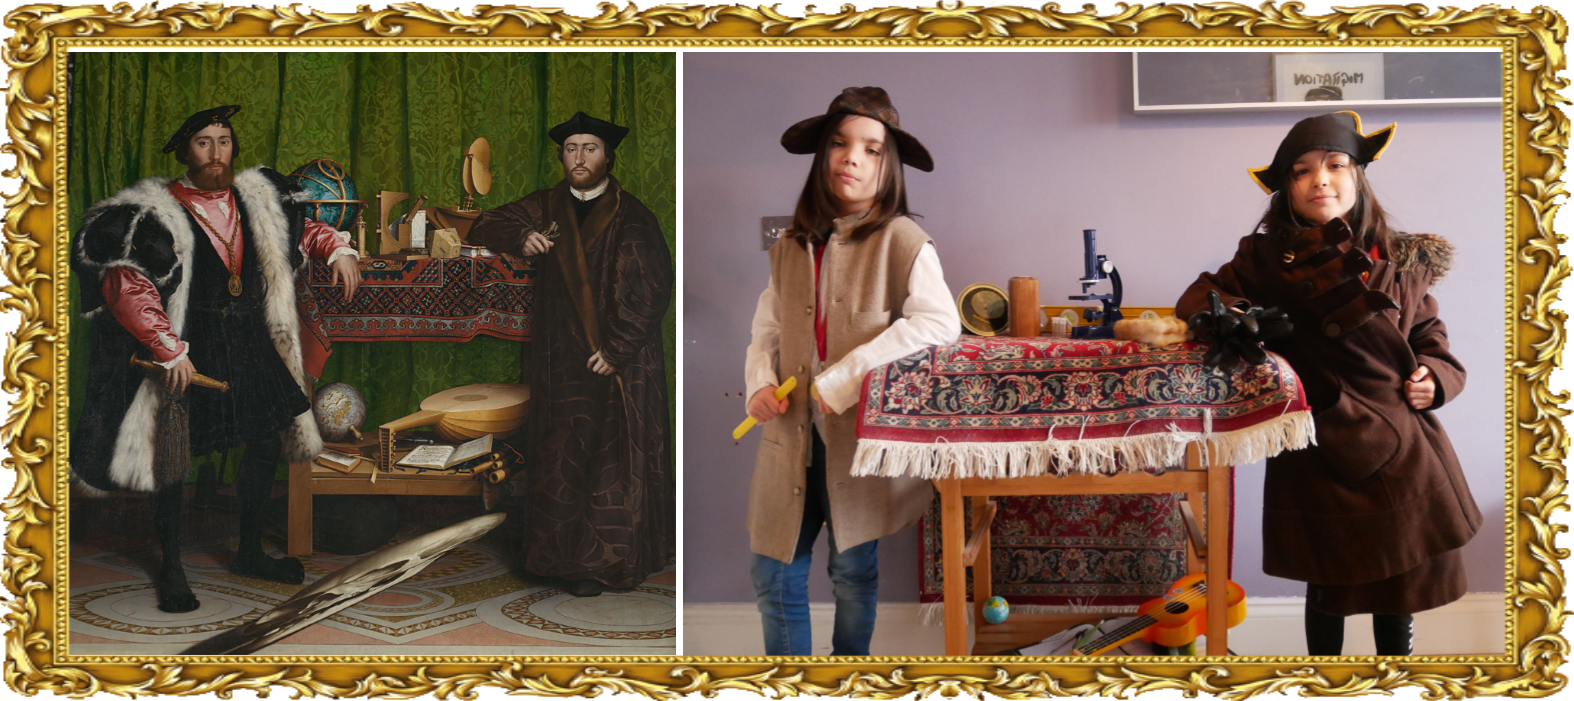 The Ambassadors by Hans Holbein the Younger 1533 (Year 6 & Year 3)